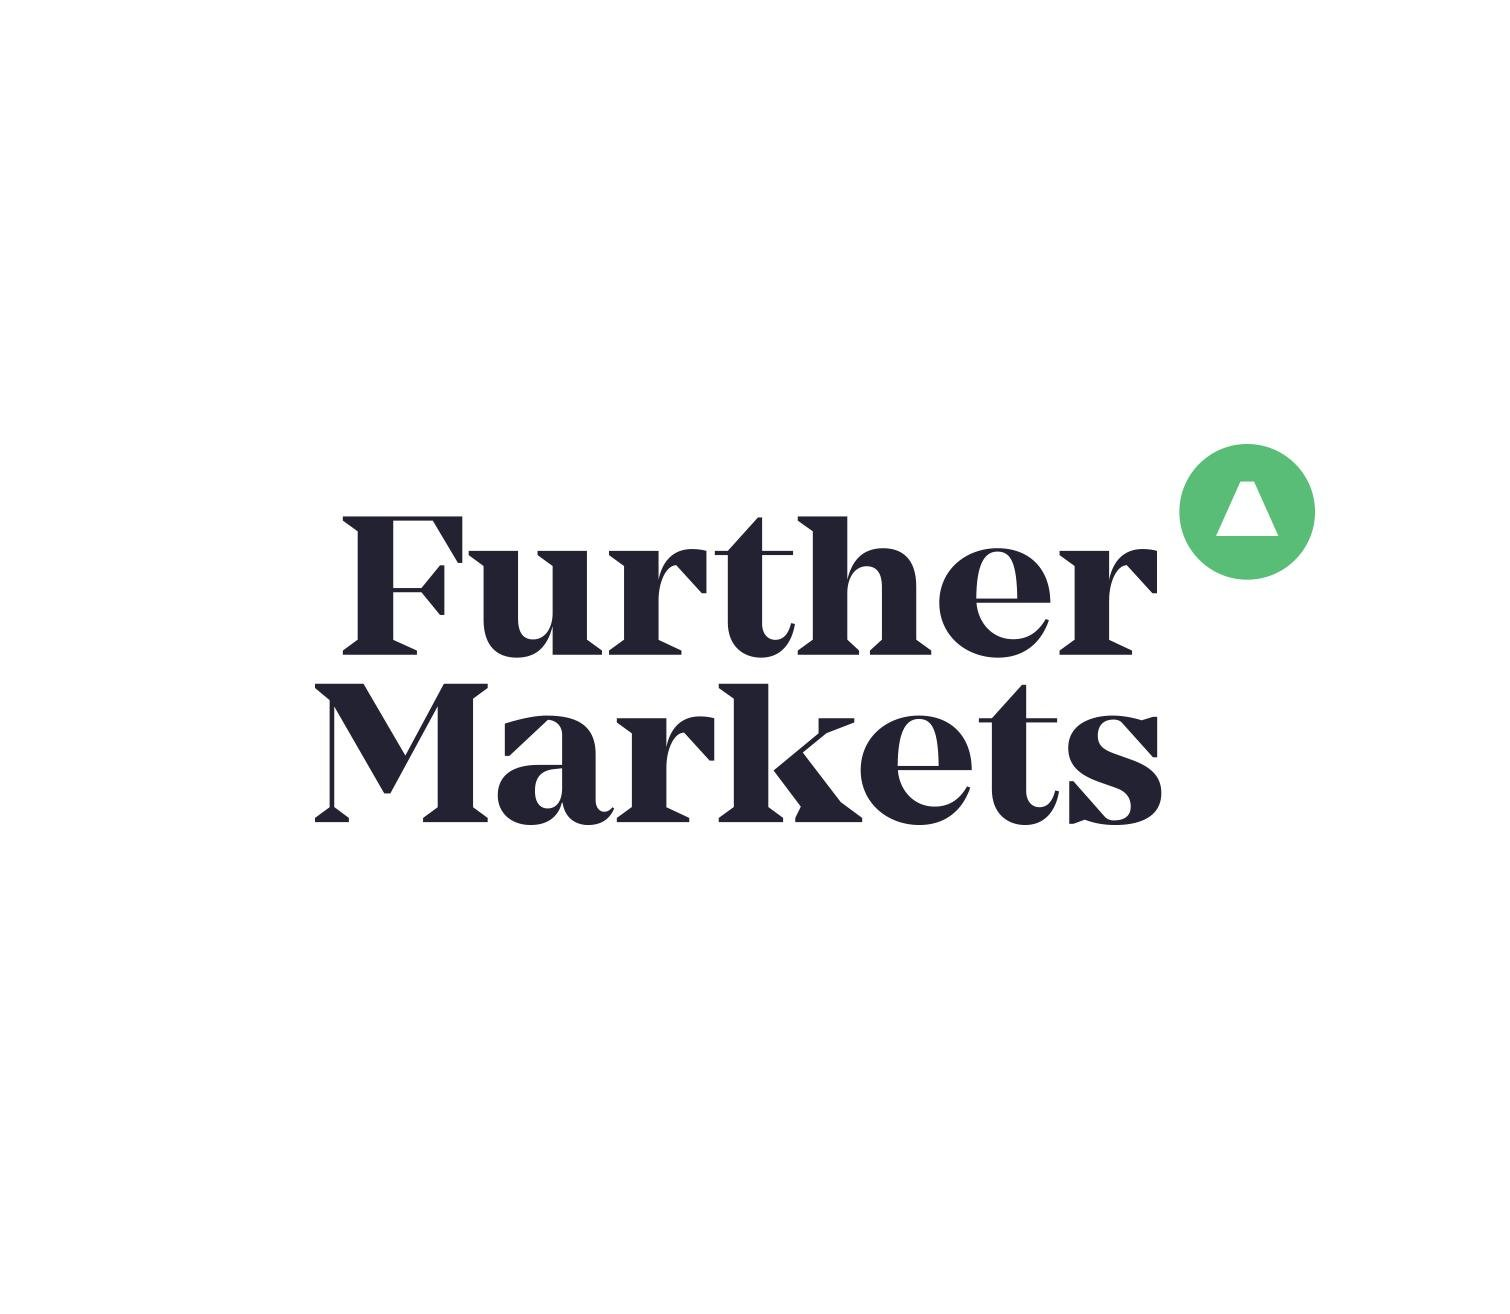 Further Markets